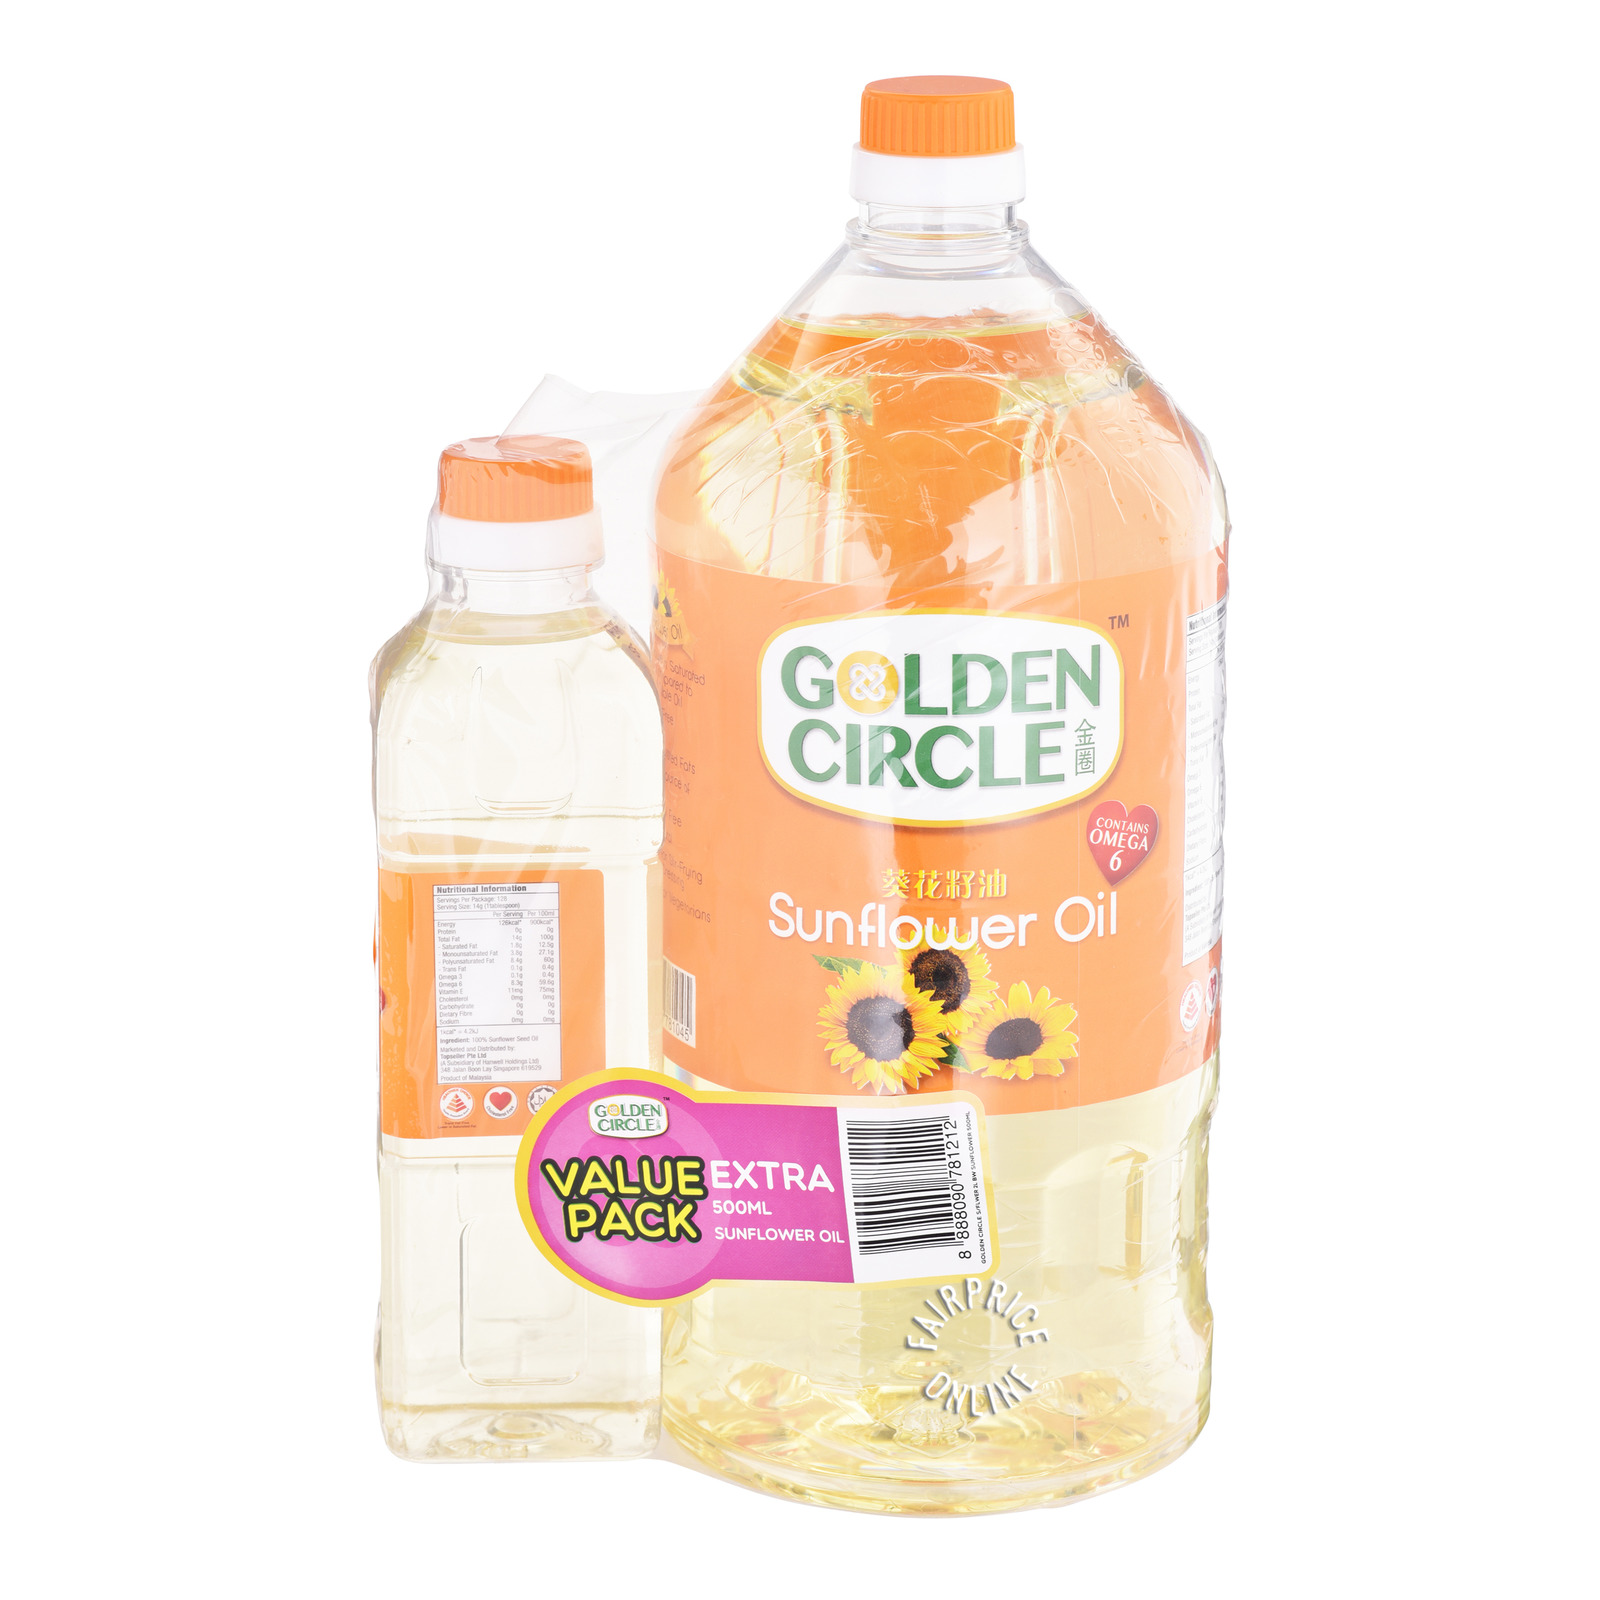 Golden Circle Sunflower Oil